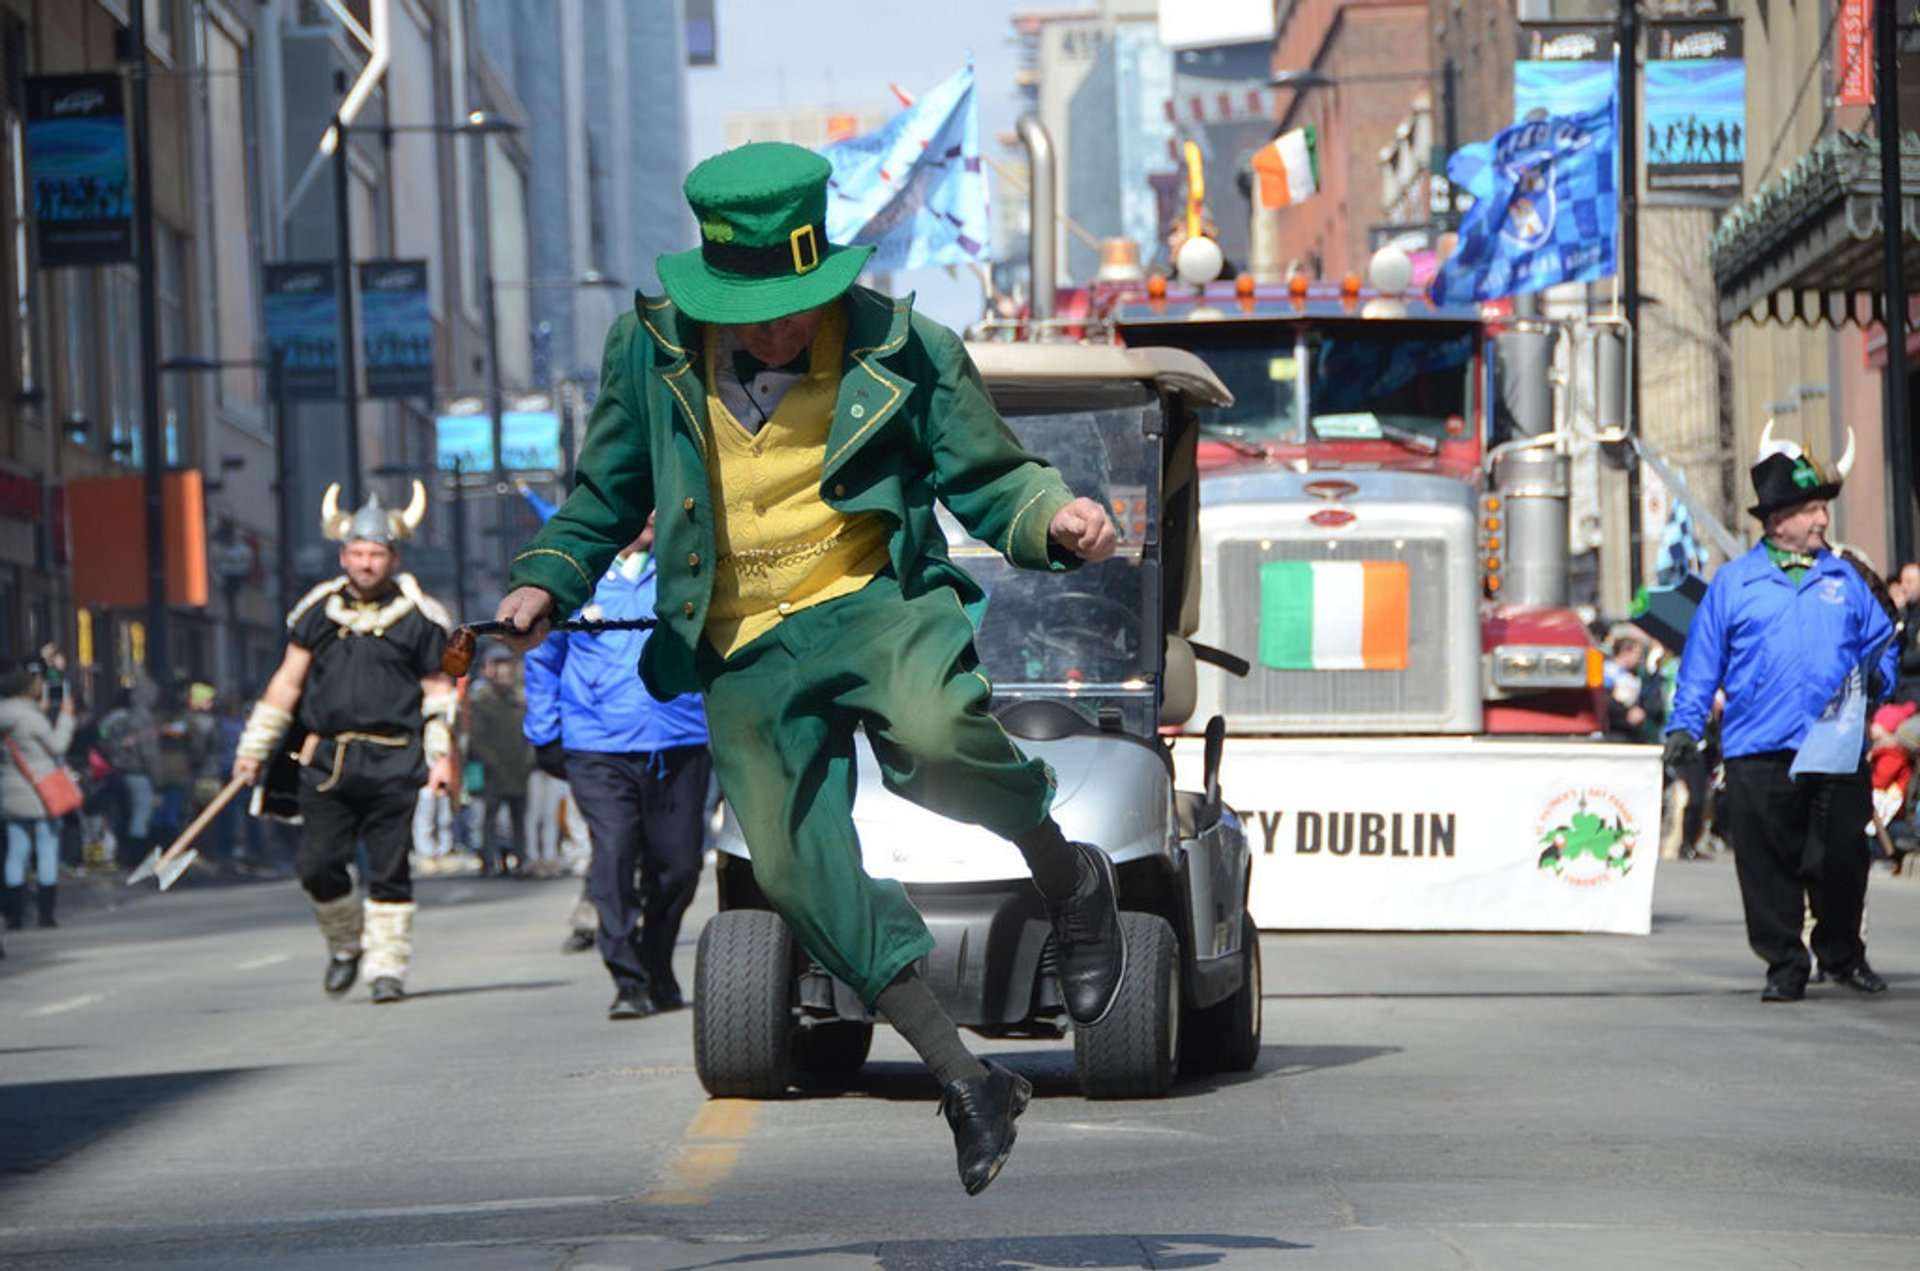 St. Patrick's Day Parade in Toronto - Best Season 2020